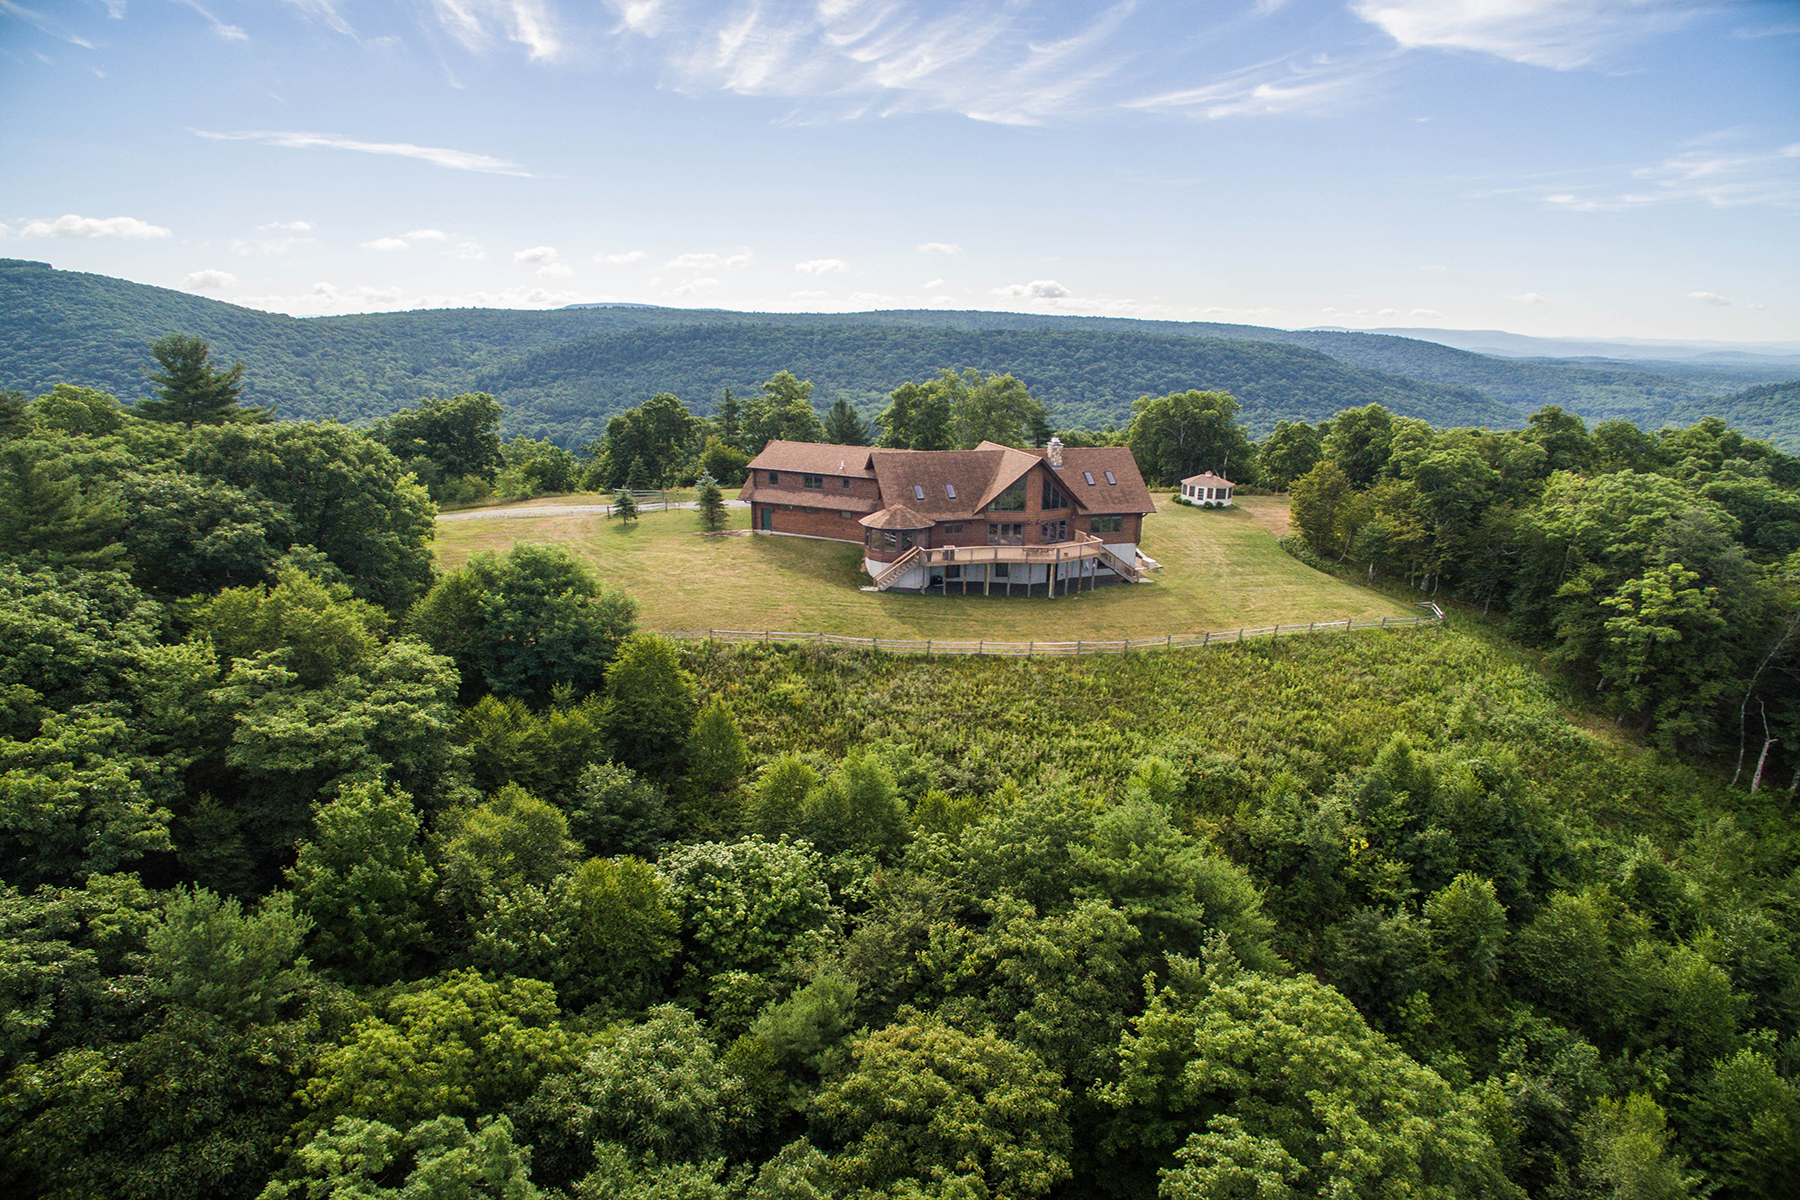 Villa per Vendita alle ore Mountain Top Log Home on 127 Acres 270 Harrington Drive Austerlitz, New York, 12017 Stati Uniti